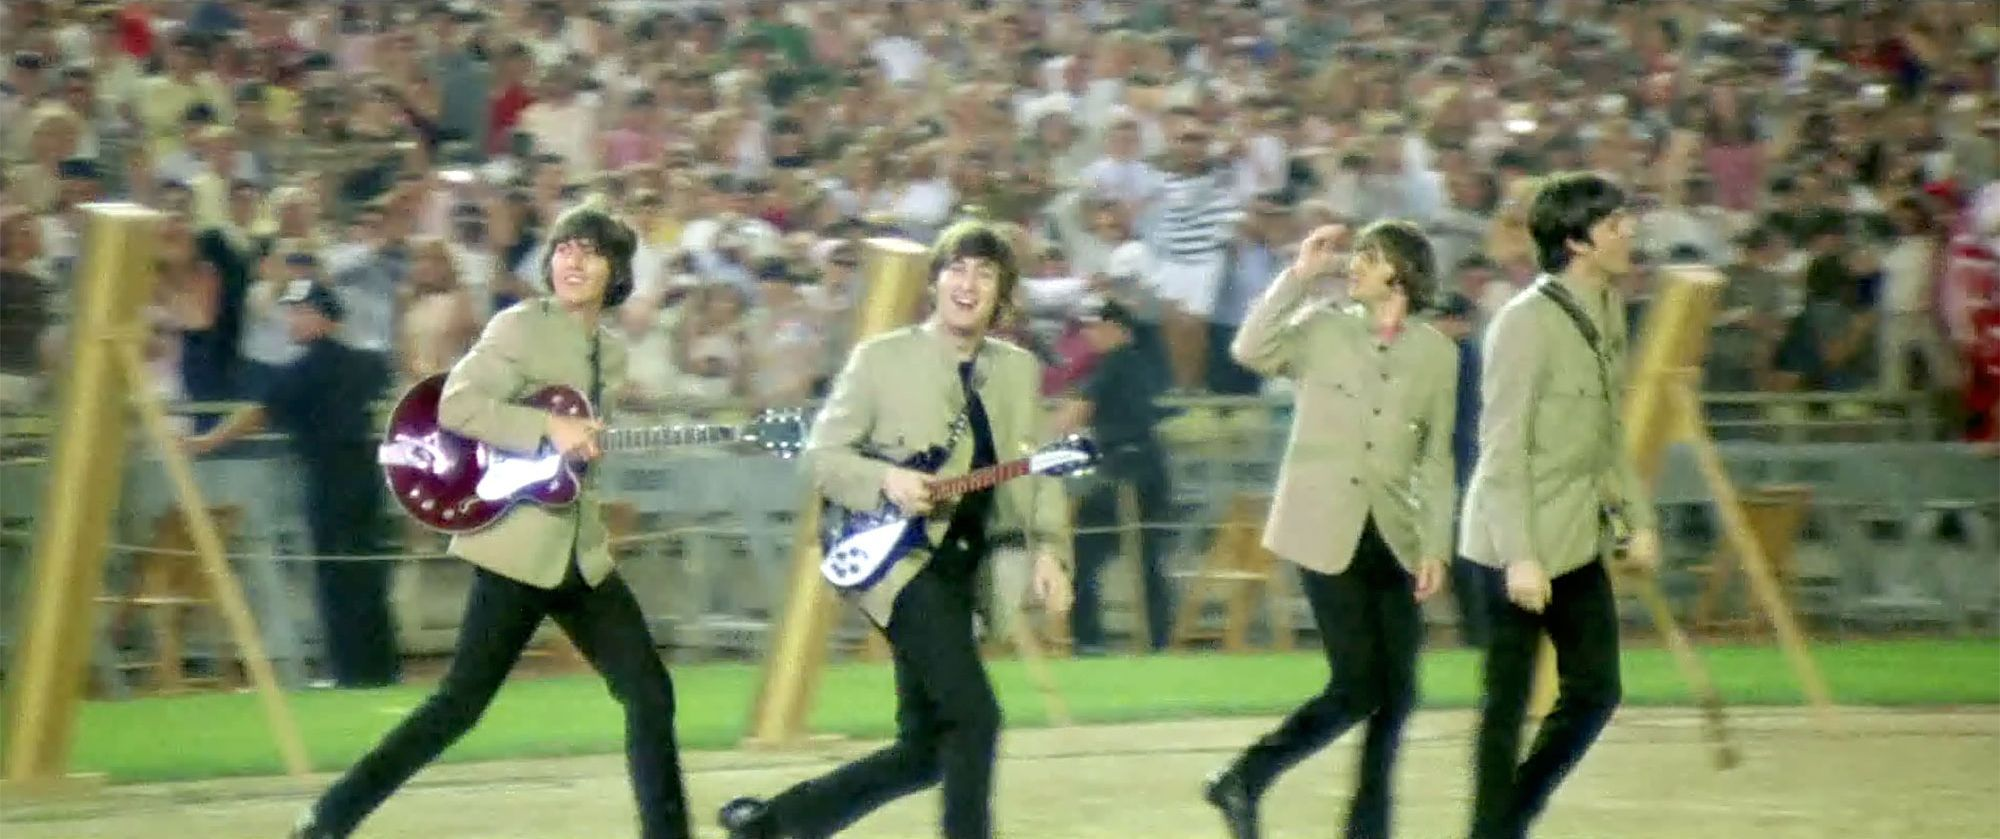 beatles_eight_days_week_mccartney_lennon_harrison_star